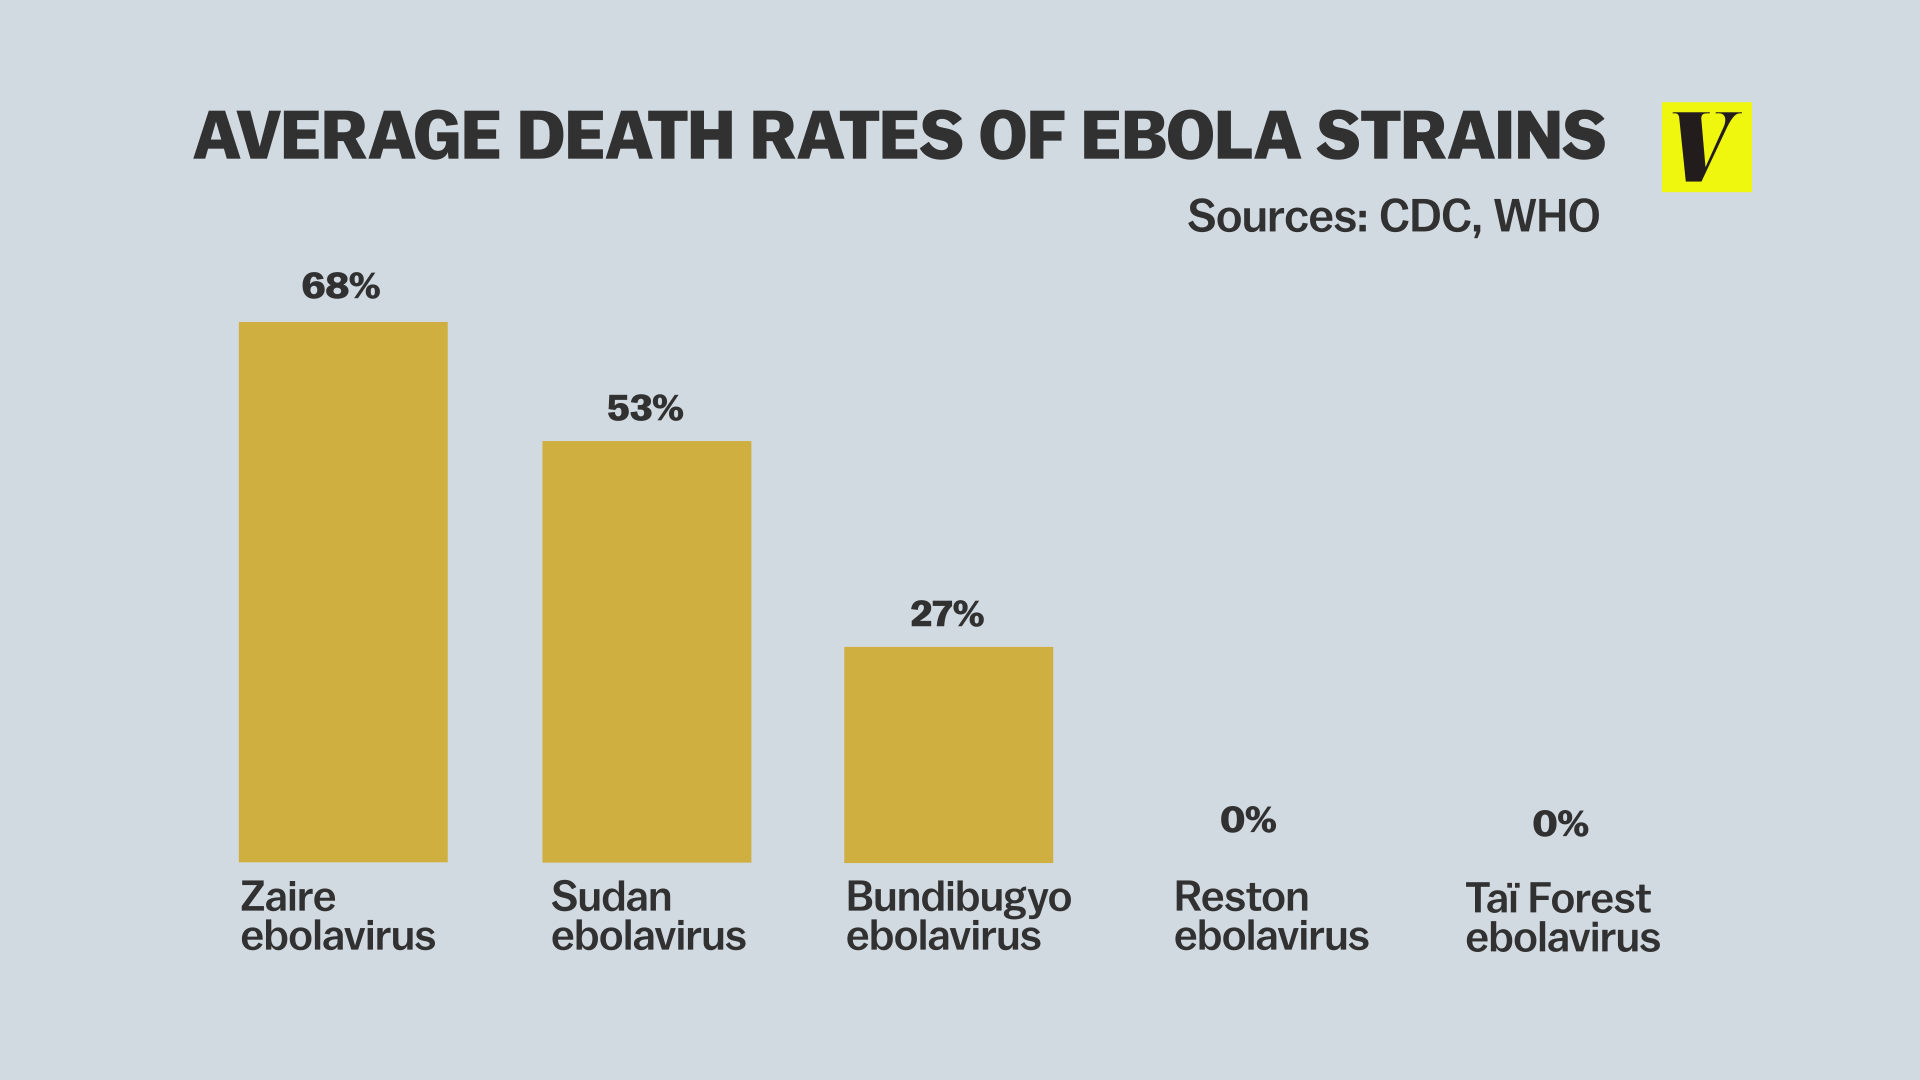 Deadliness of Ebola Strains